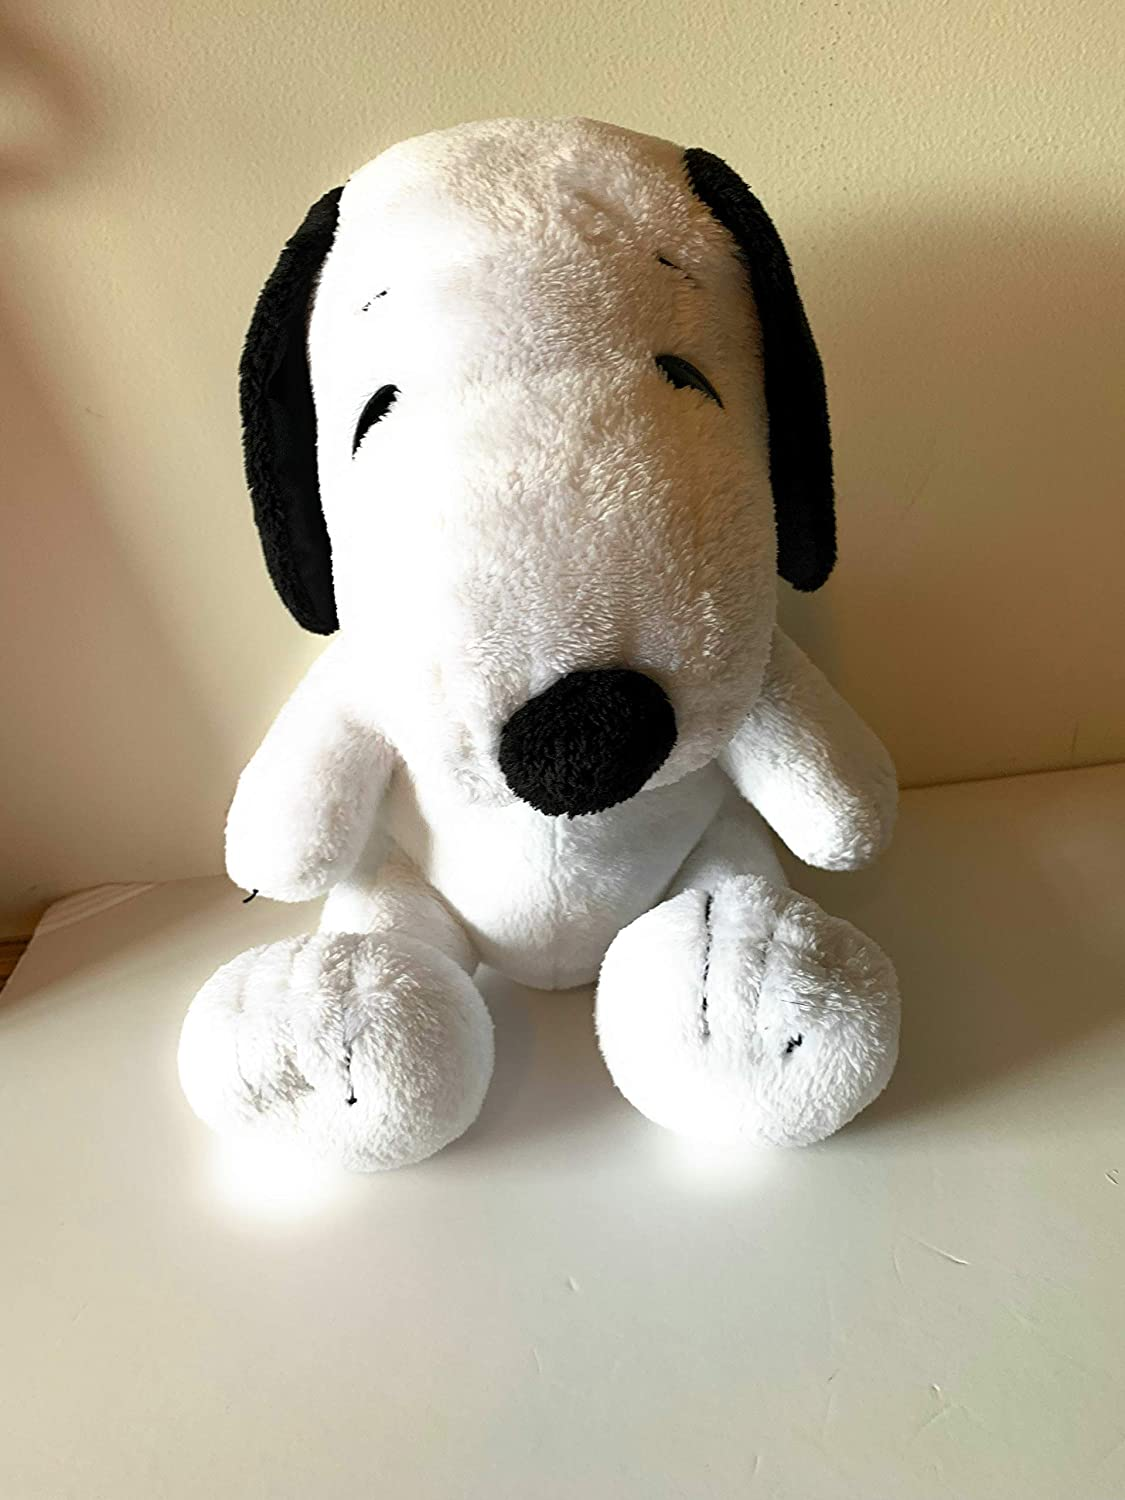 dog washable Weighted stuffed animal snoopy 3 lbs sensory toy